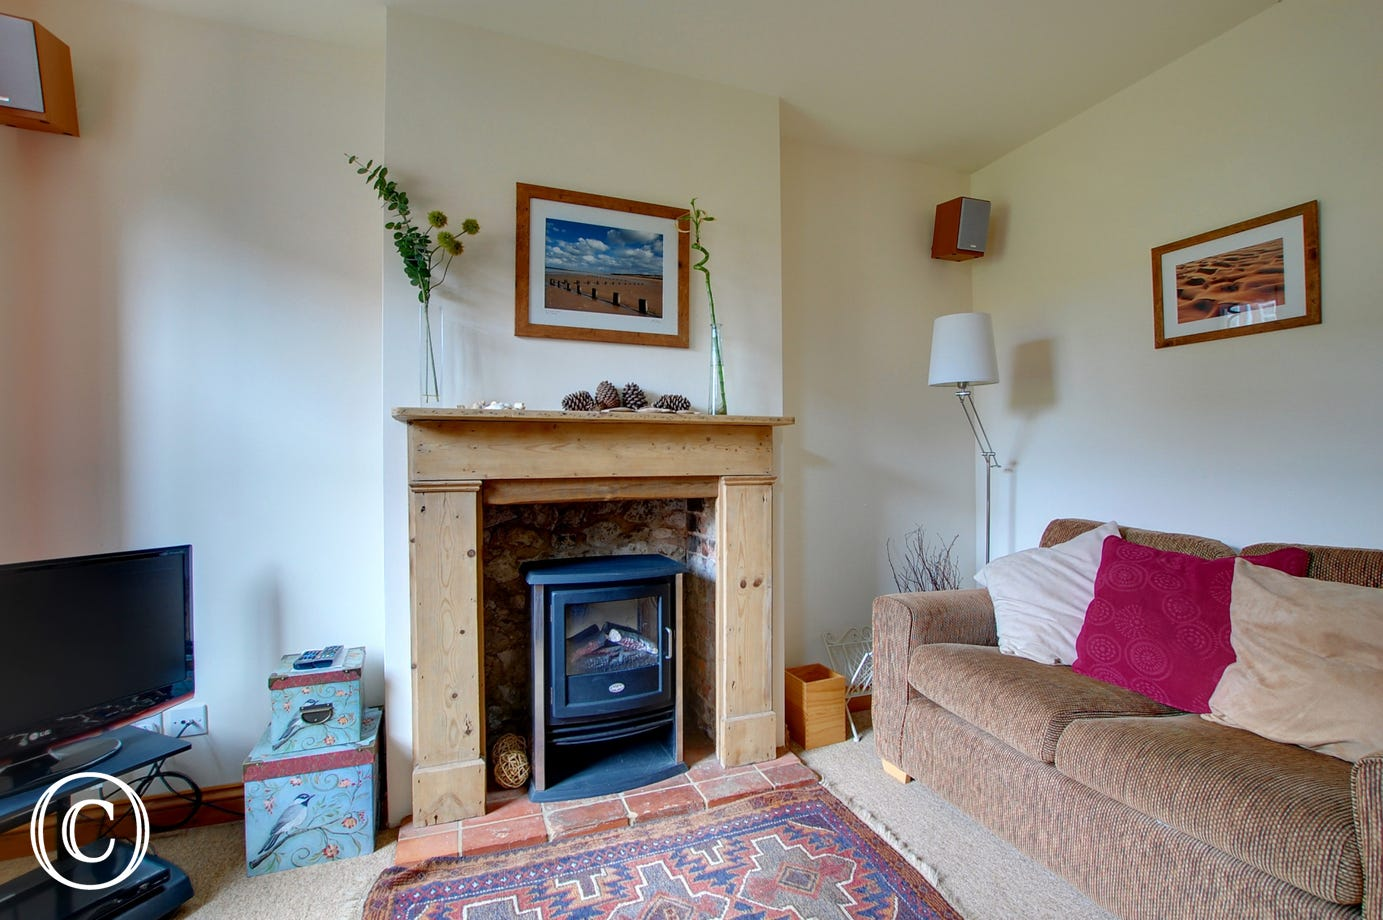 The sitting room has an attractive fire place with an electric living flame fire that supplements the gas central heating and gives a cosy feel